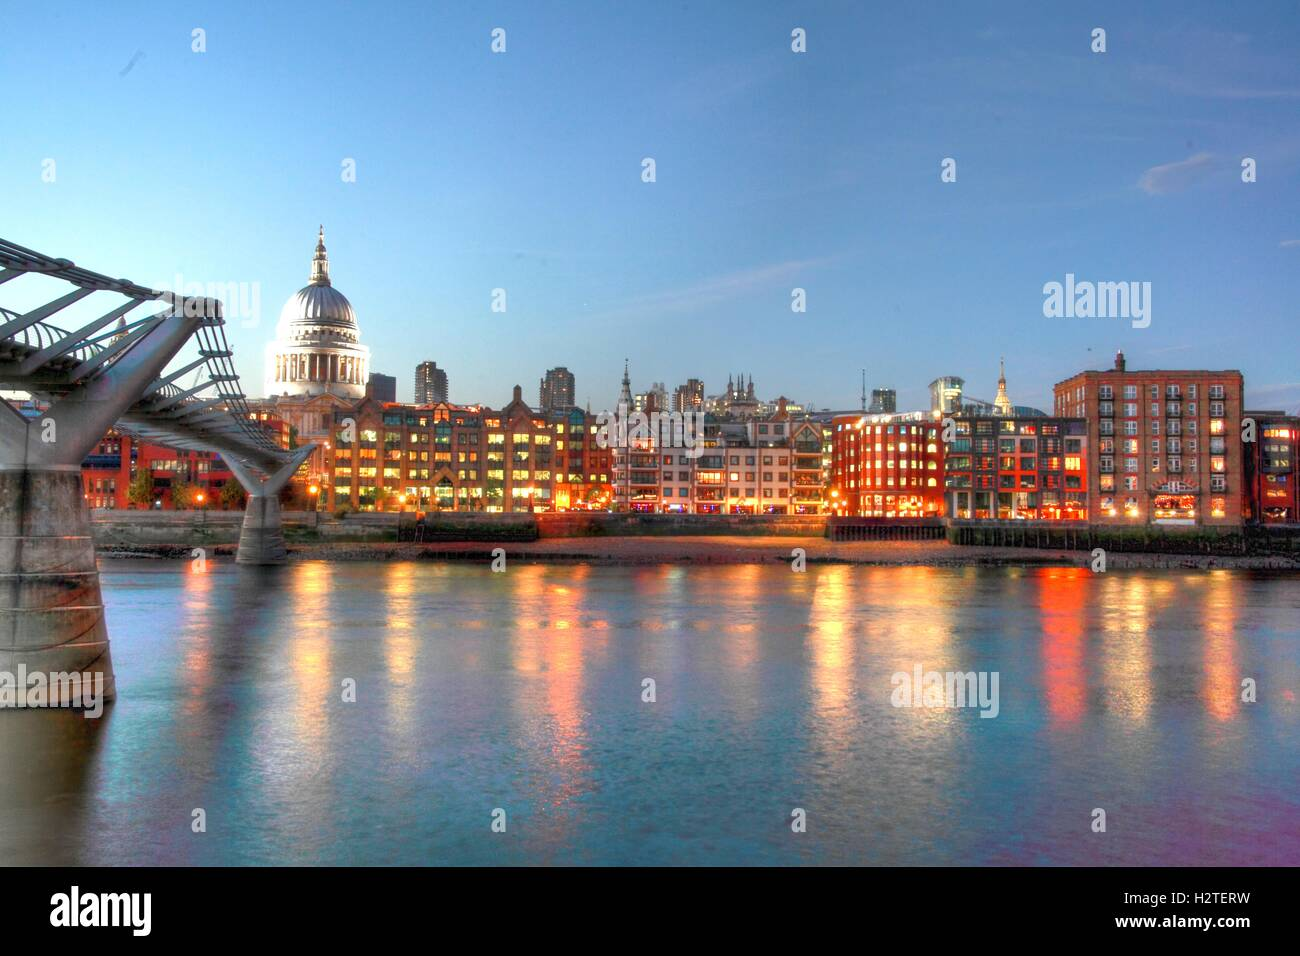 Capital,City,water,reflection,reflections,skyline,pano,blue,dusk,evening,morning,dawn,bridge,bridges,dock,dockside,riverside,side,wide,landscape,south,north,bank,travel,traveller,tourist,thamespanorama,architecture,boats,building,business,business,district,cityscape,lit,River Side,GoTonySmith,@HotpixUK,Tony,Smith,different,unique,Panorama,bridges,crossing,crossings,lights,icon,iconic,sky,line,skyline,walkway,visitor,Cathedral,Buy Pictures of,Buy Images Of,Images of,Stock Images,Tony Smith,Photo of,River Thames,City Of London,River Thames Panorama,London City,St Pauls,St Pauls Cathedral